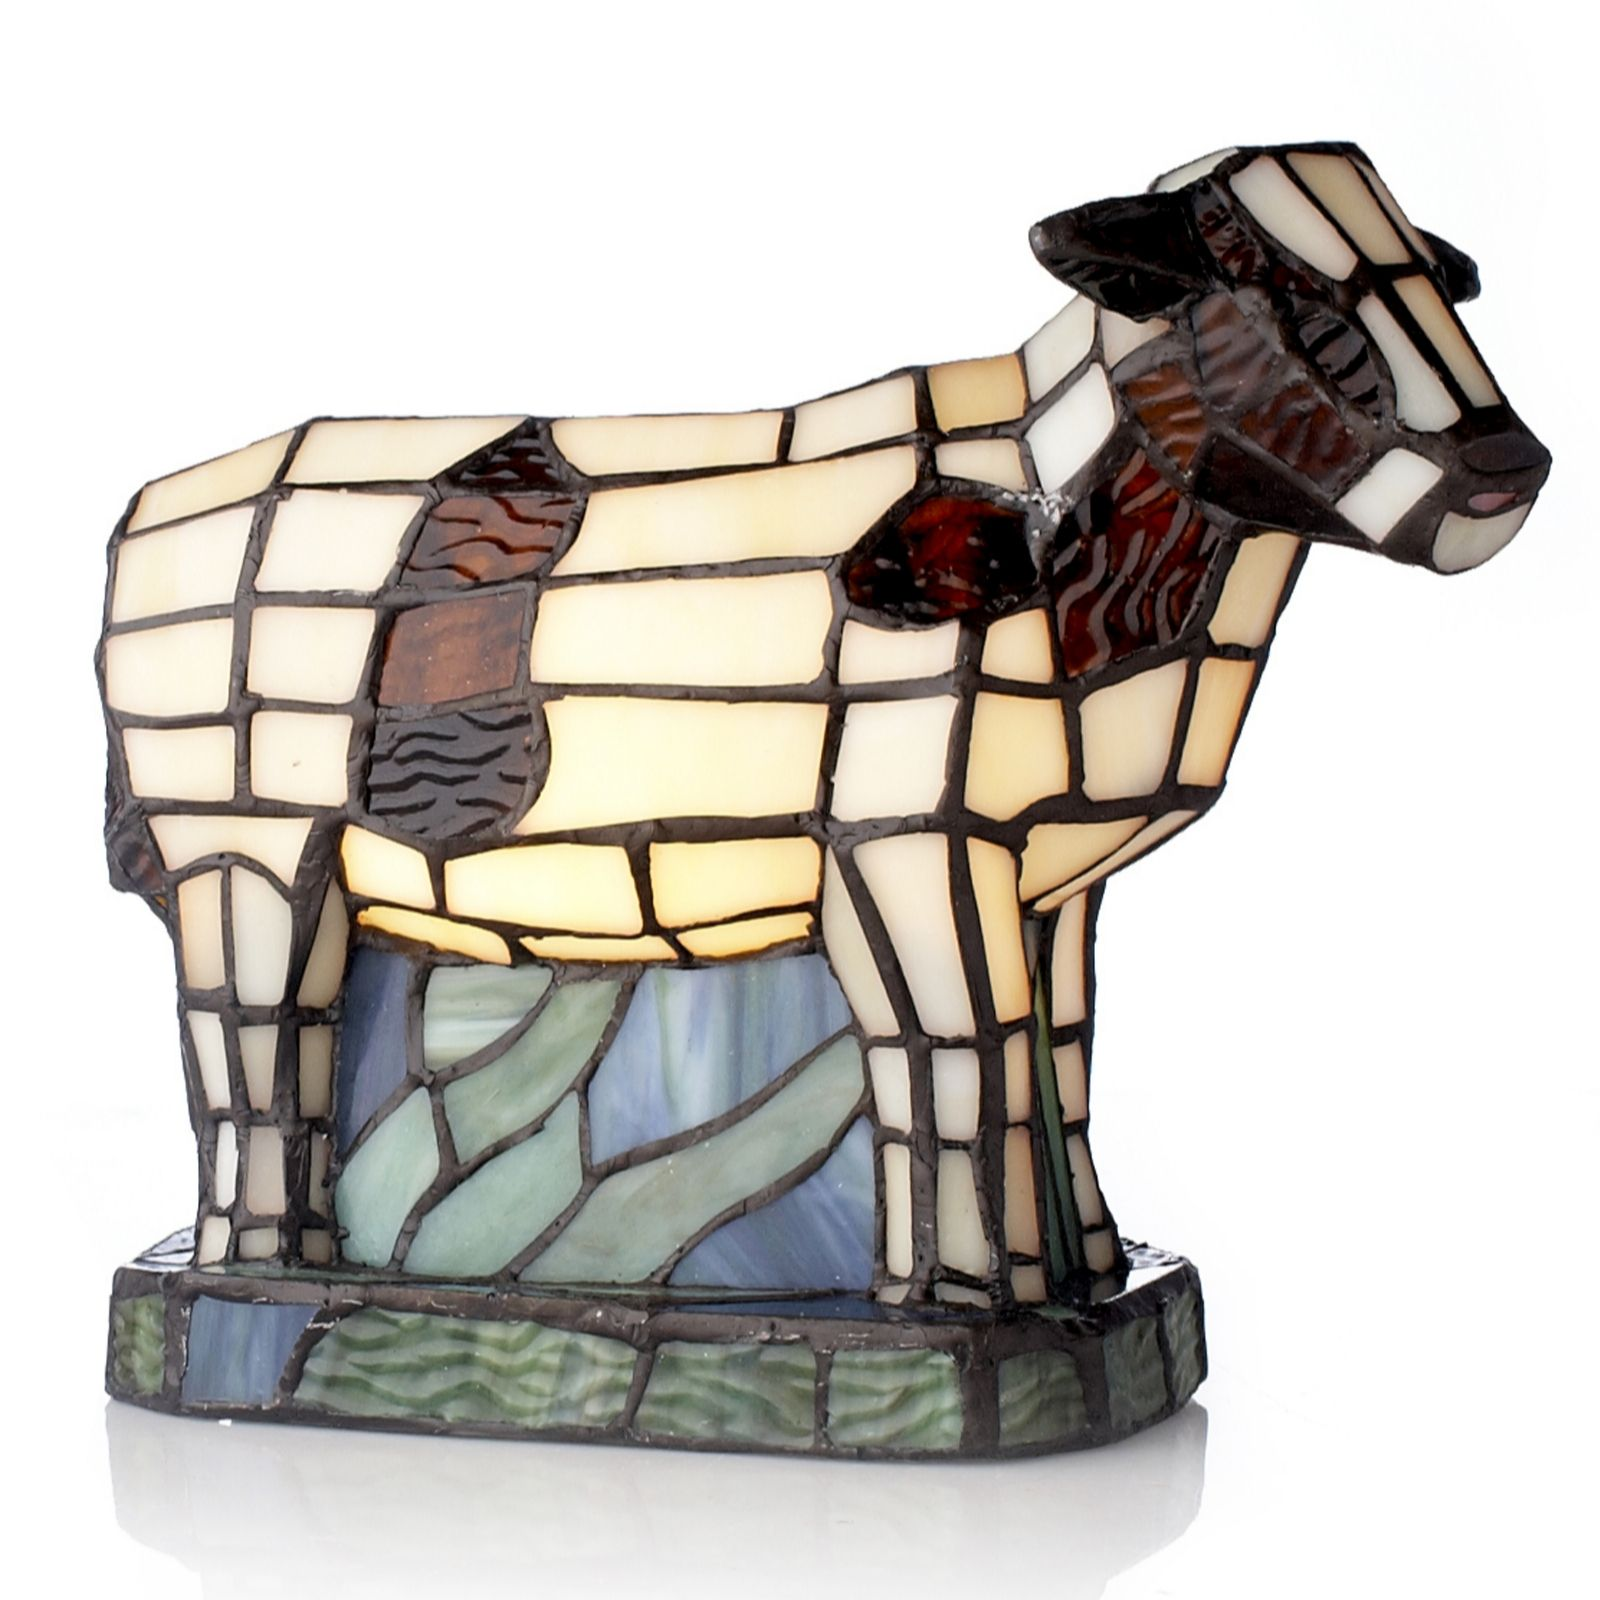 Tiffany Style Handcrafted Ayrshire Cow Novelty Lamp   QVC UK